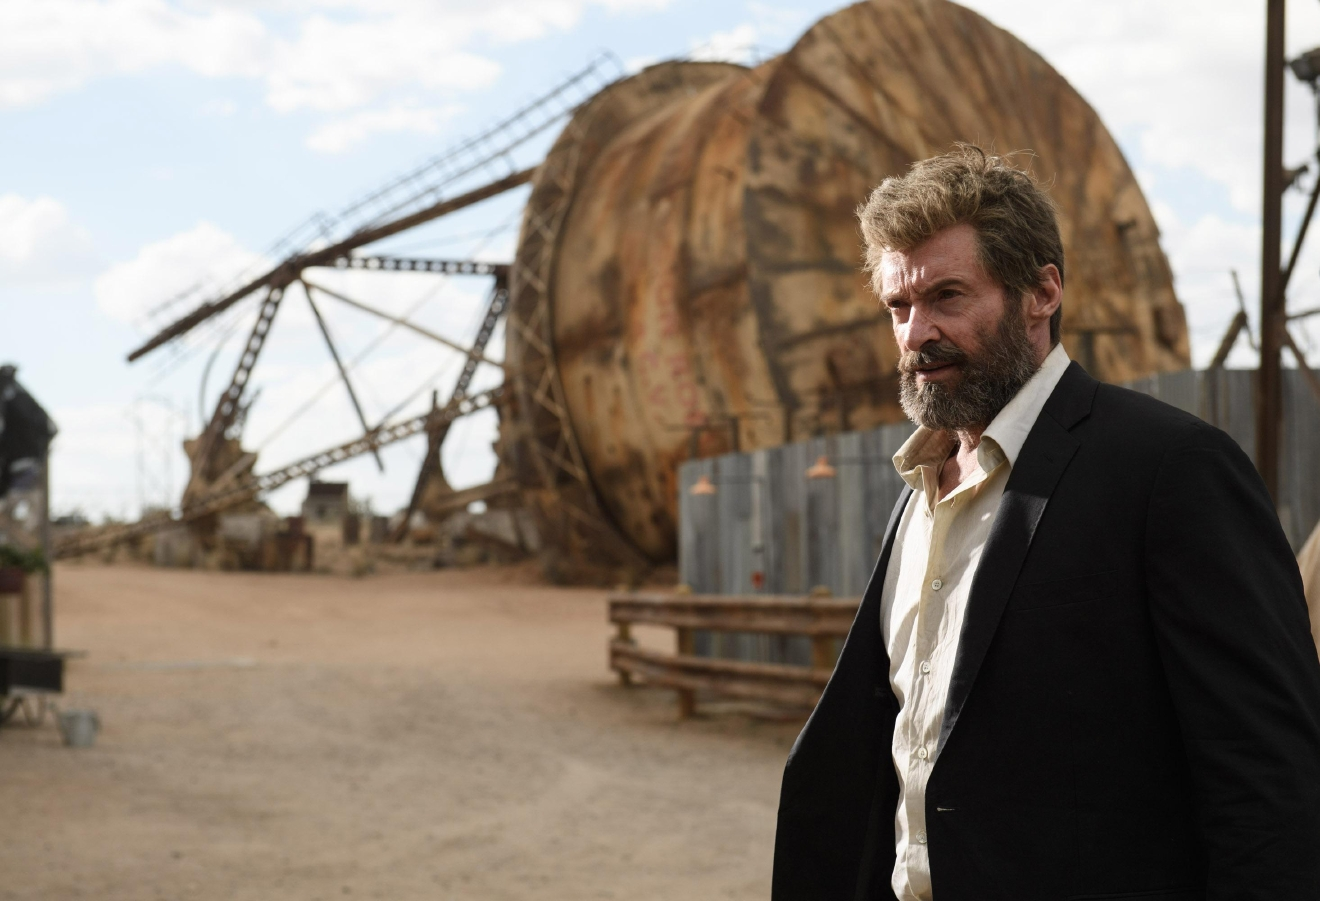 Hugh Jackman stars as Logan/Wolverine in LOGAN. Photo Credit: Ben Rothstein.